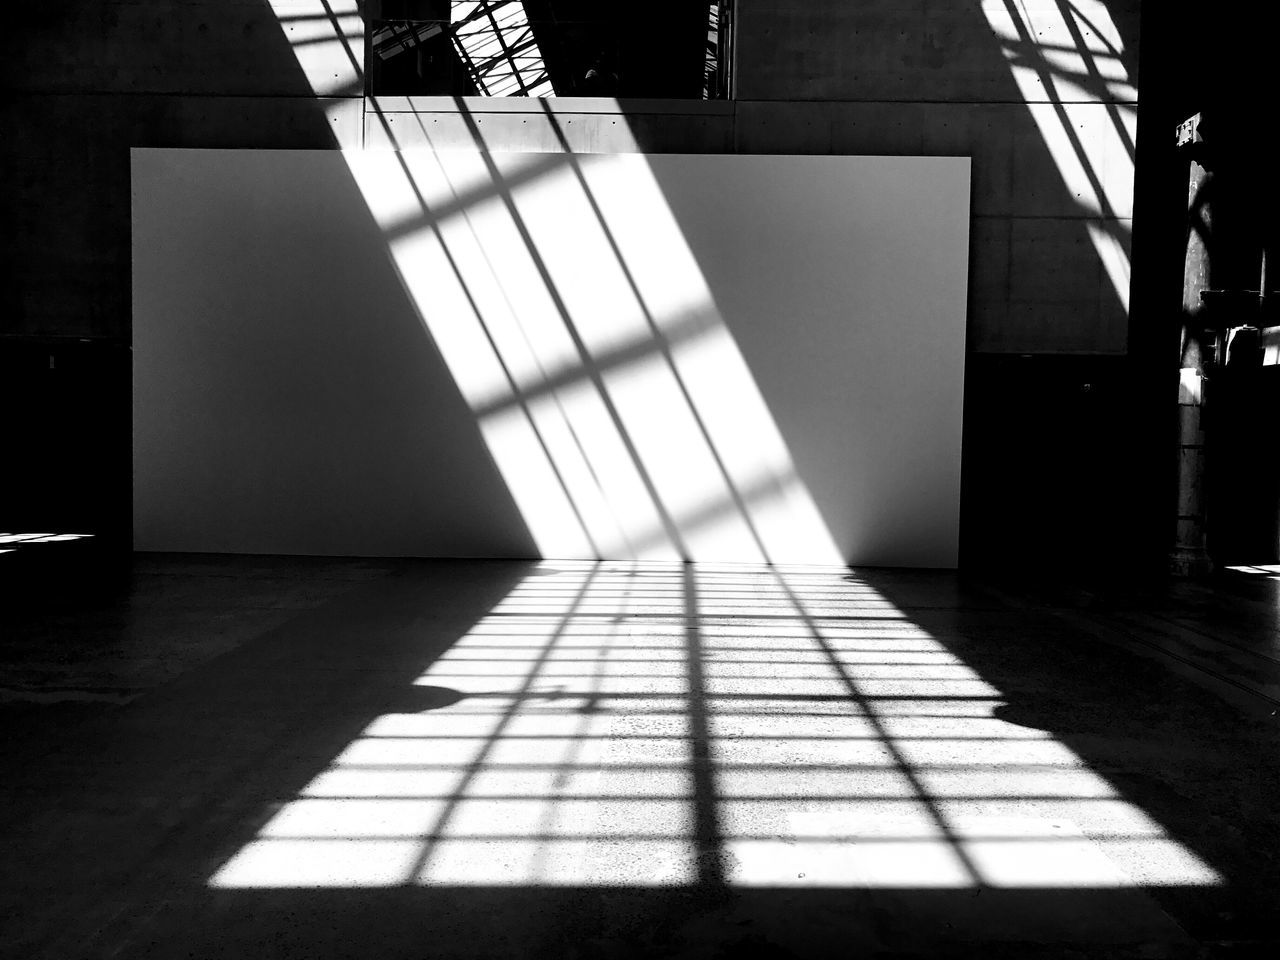 Indoors  Tiled Floor Architecture Built Structure Day No People Natural Light The City Light Light And Shadow